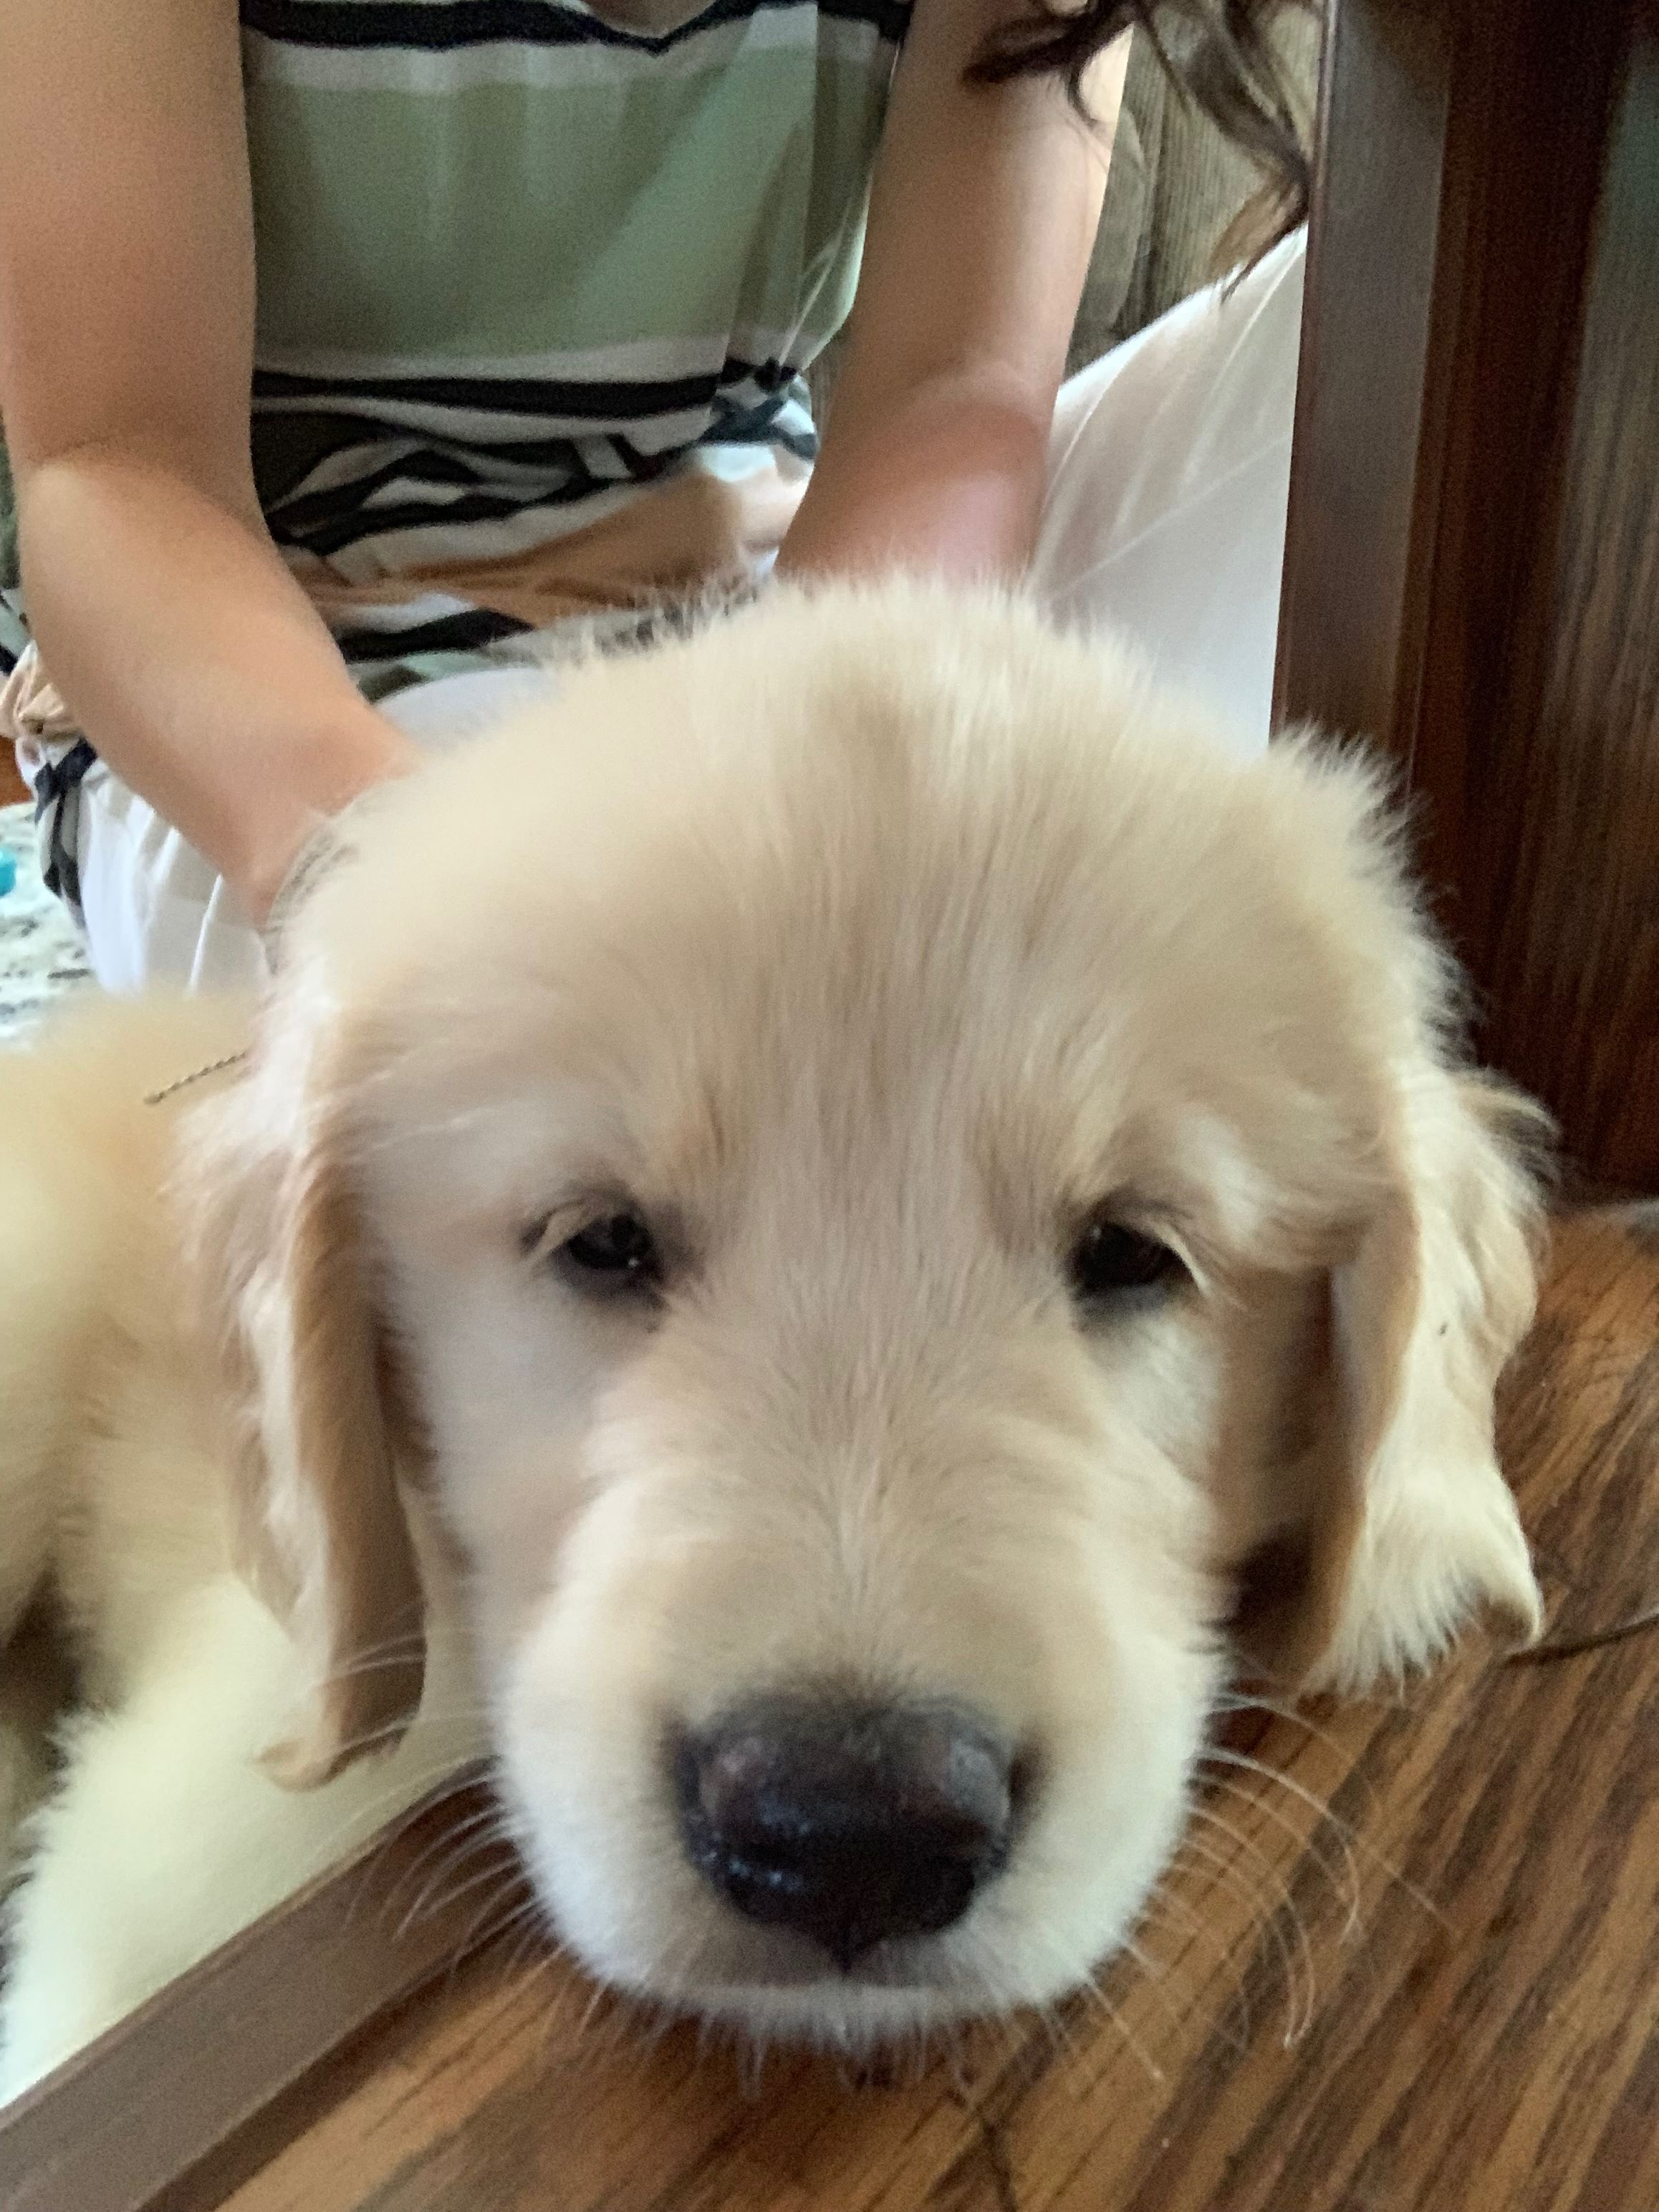 Shoo Shleepyyy Cute Cats And Dogs Cutest Dog Ever Golden Retriever